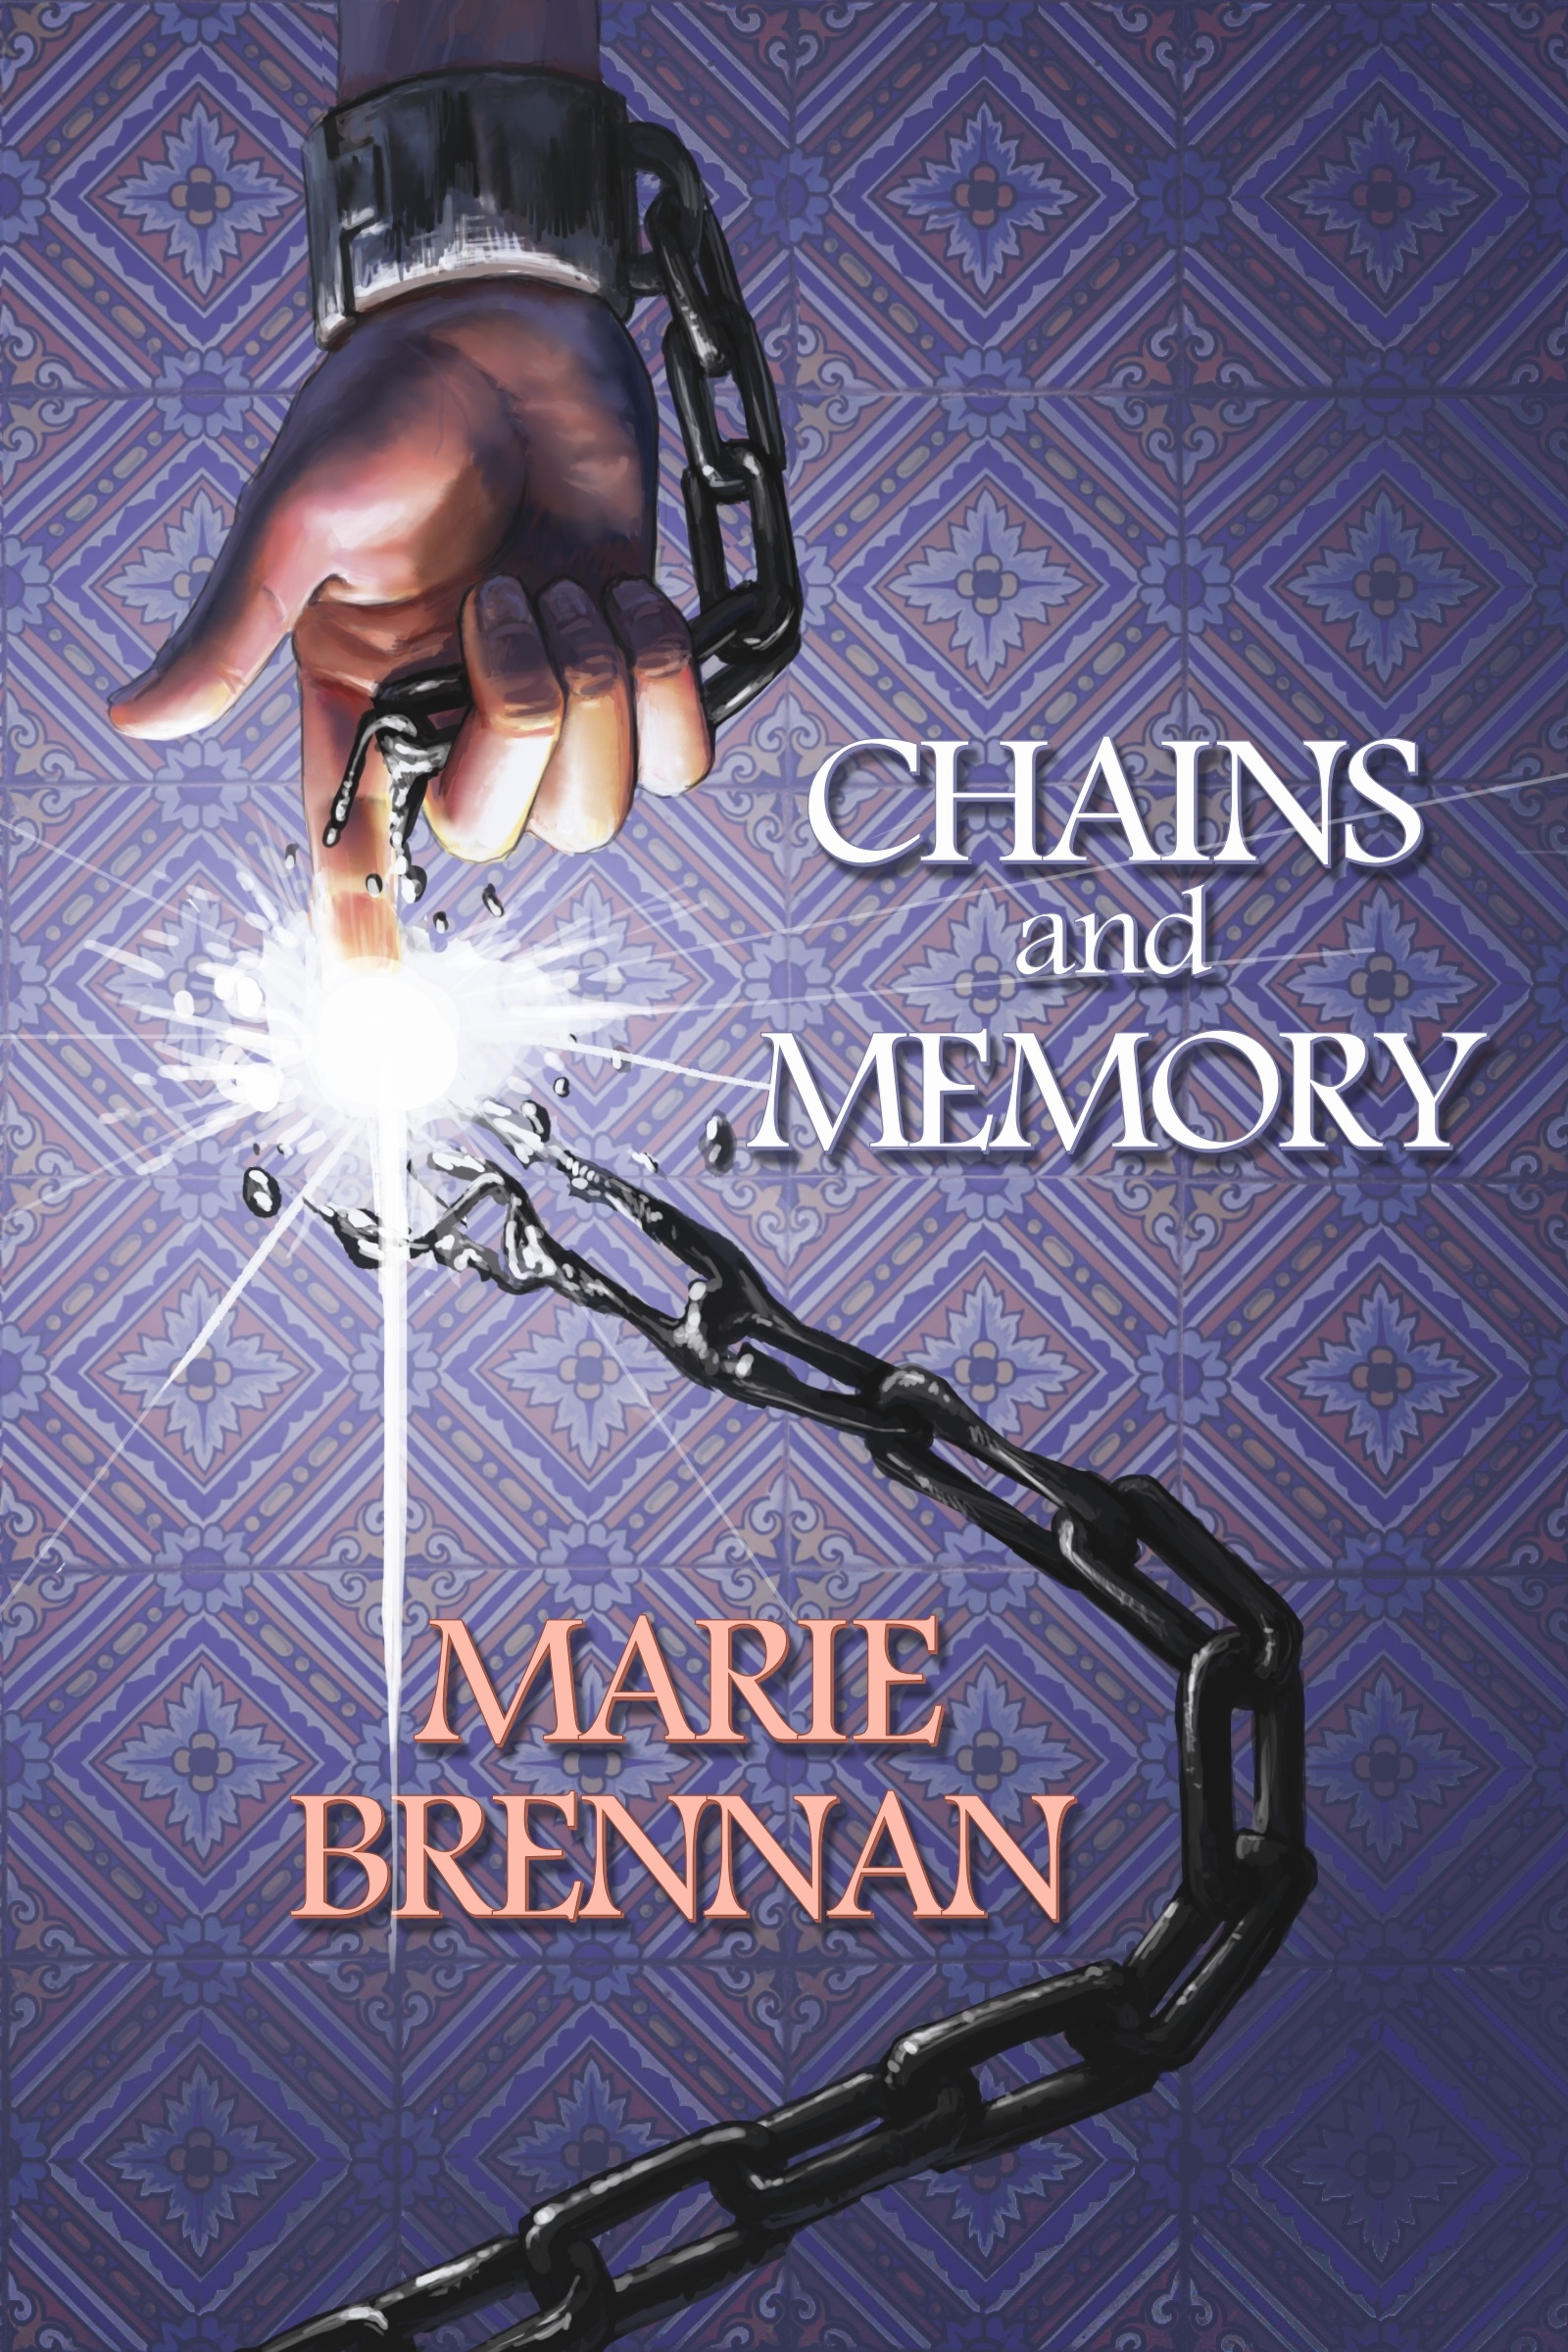 Brennan-ChainsandMemory-1600x2400